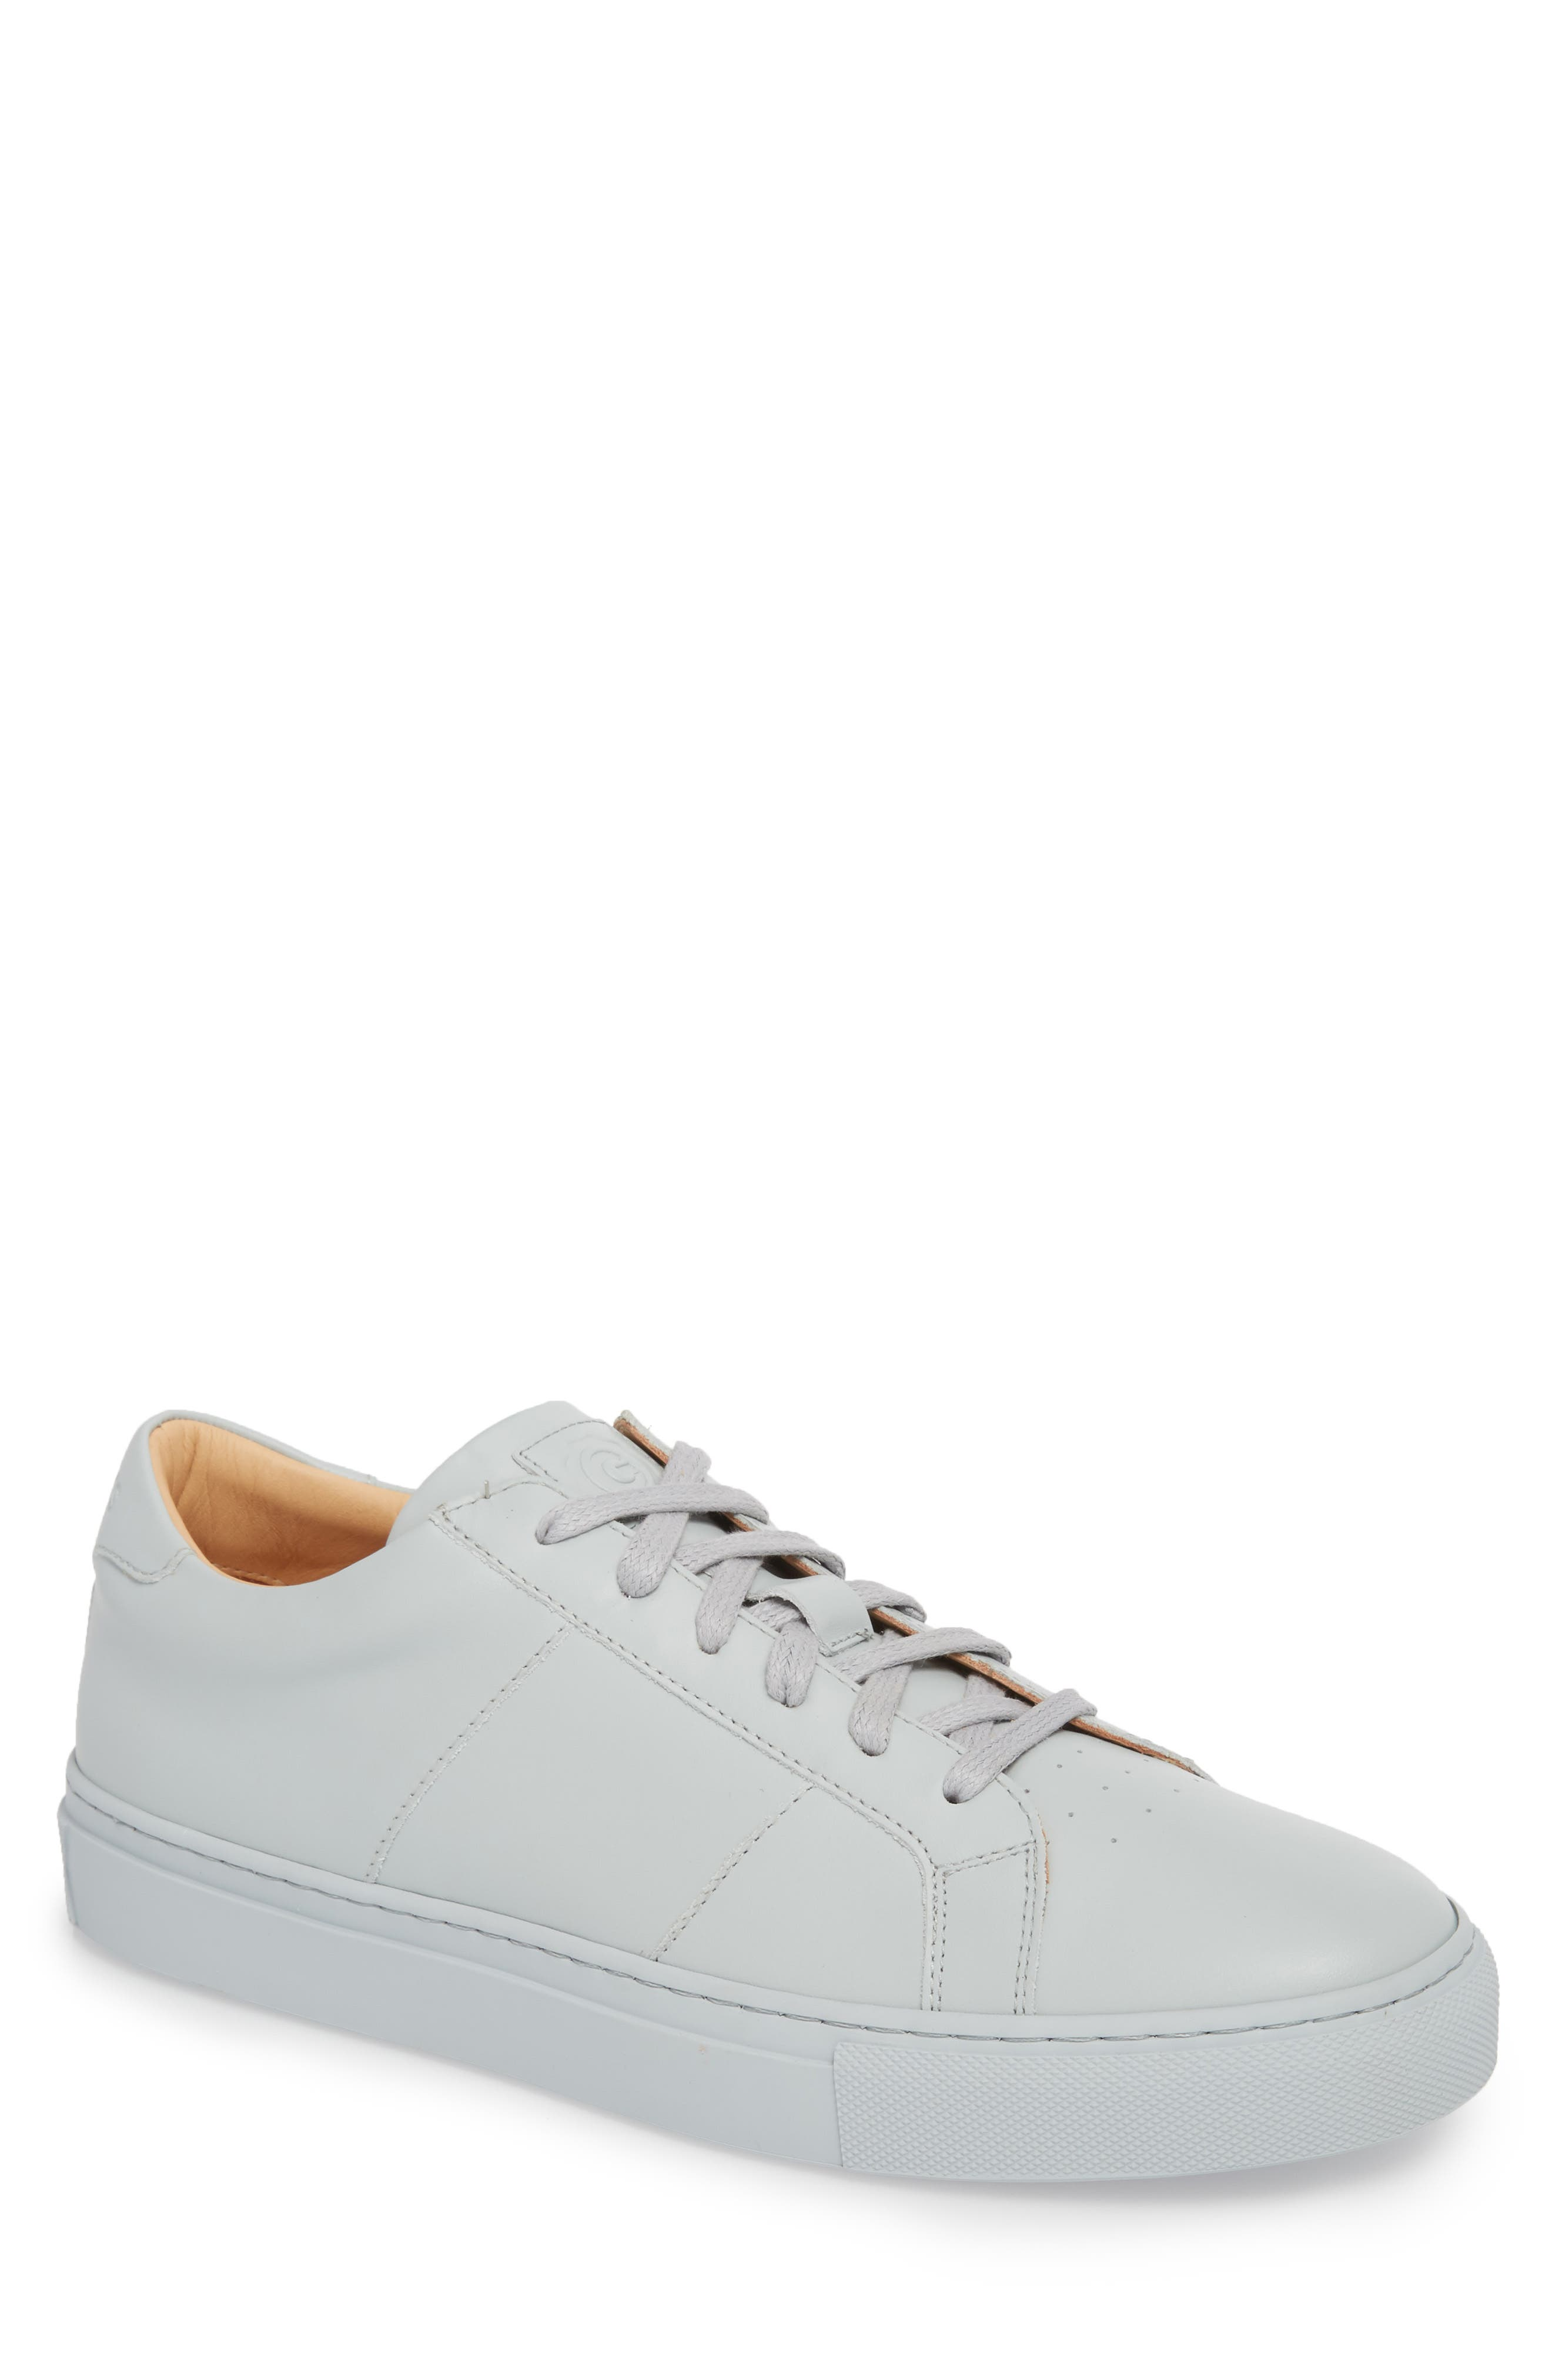 Royale Sneaker,                         Main,                         color, Grey Tonal Leather